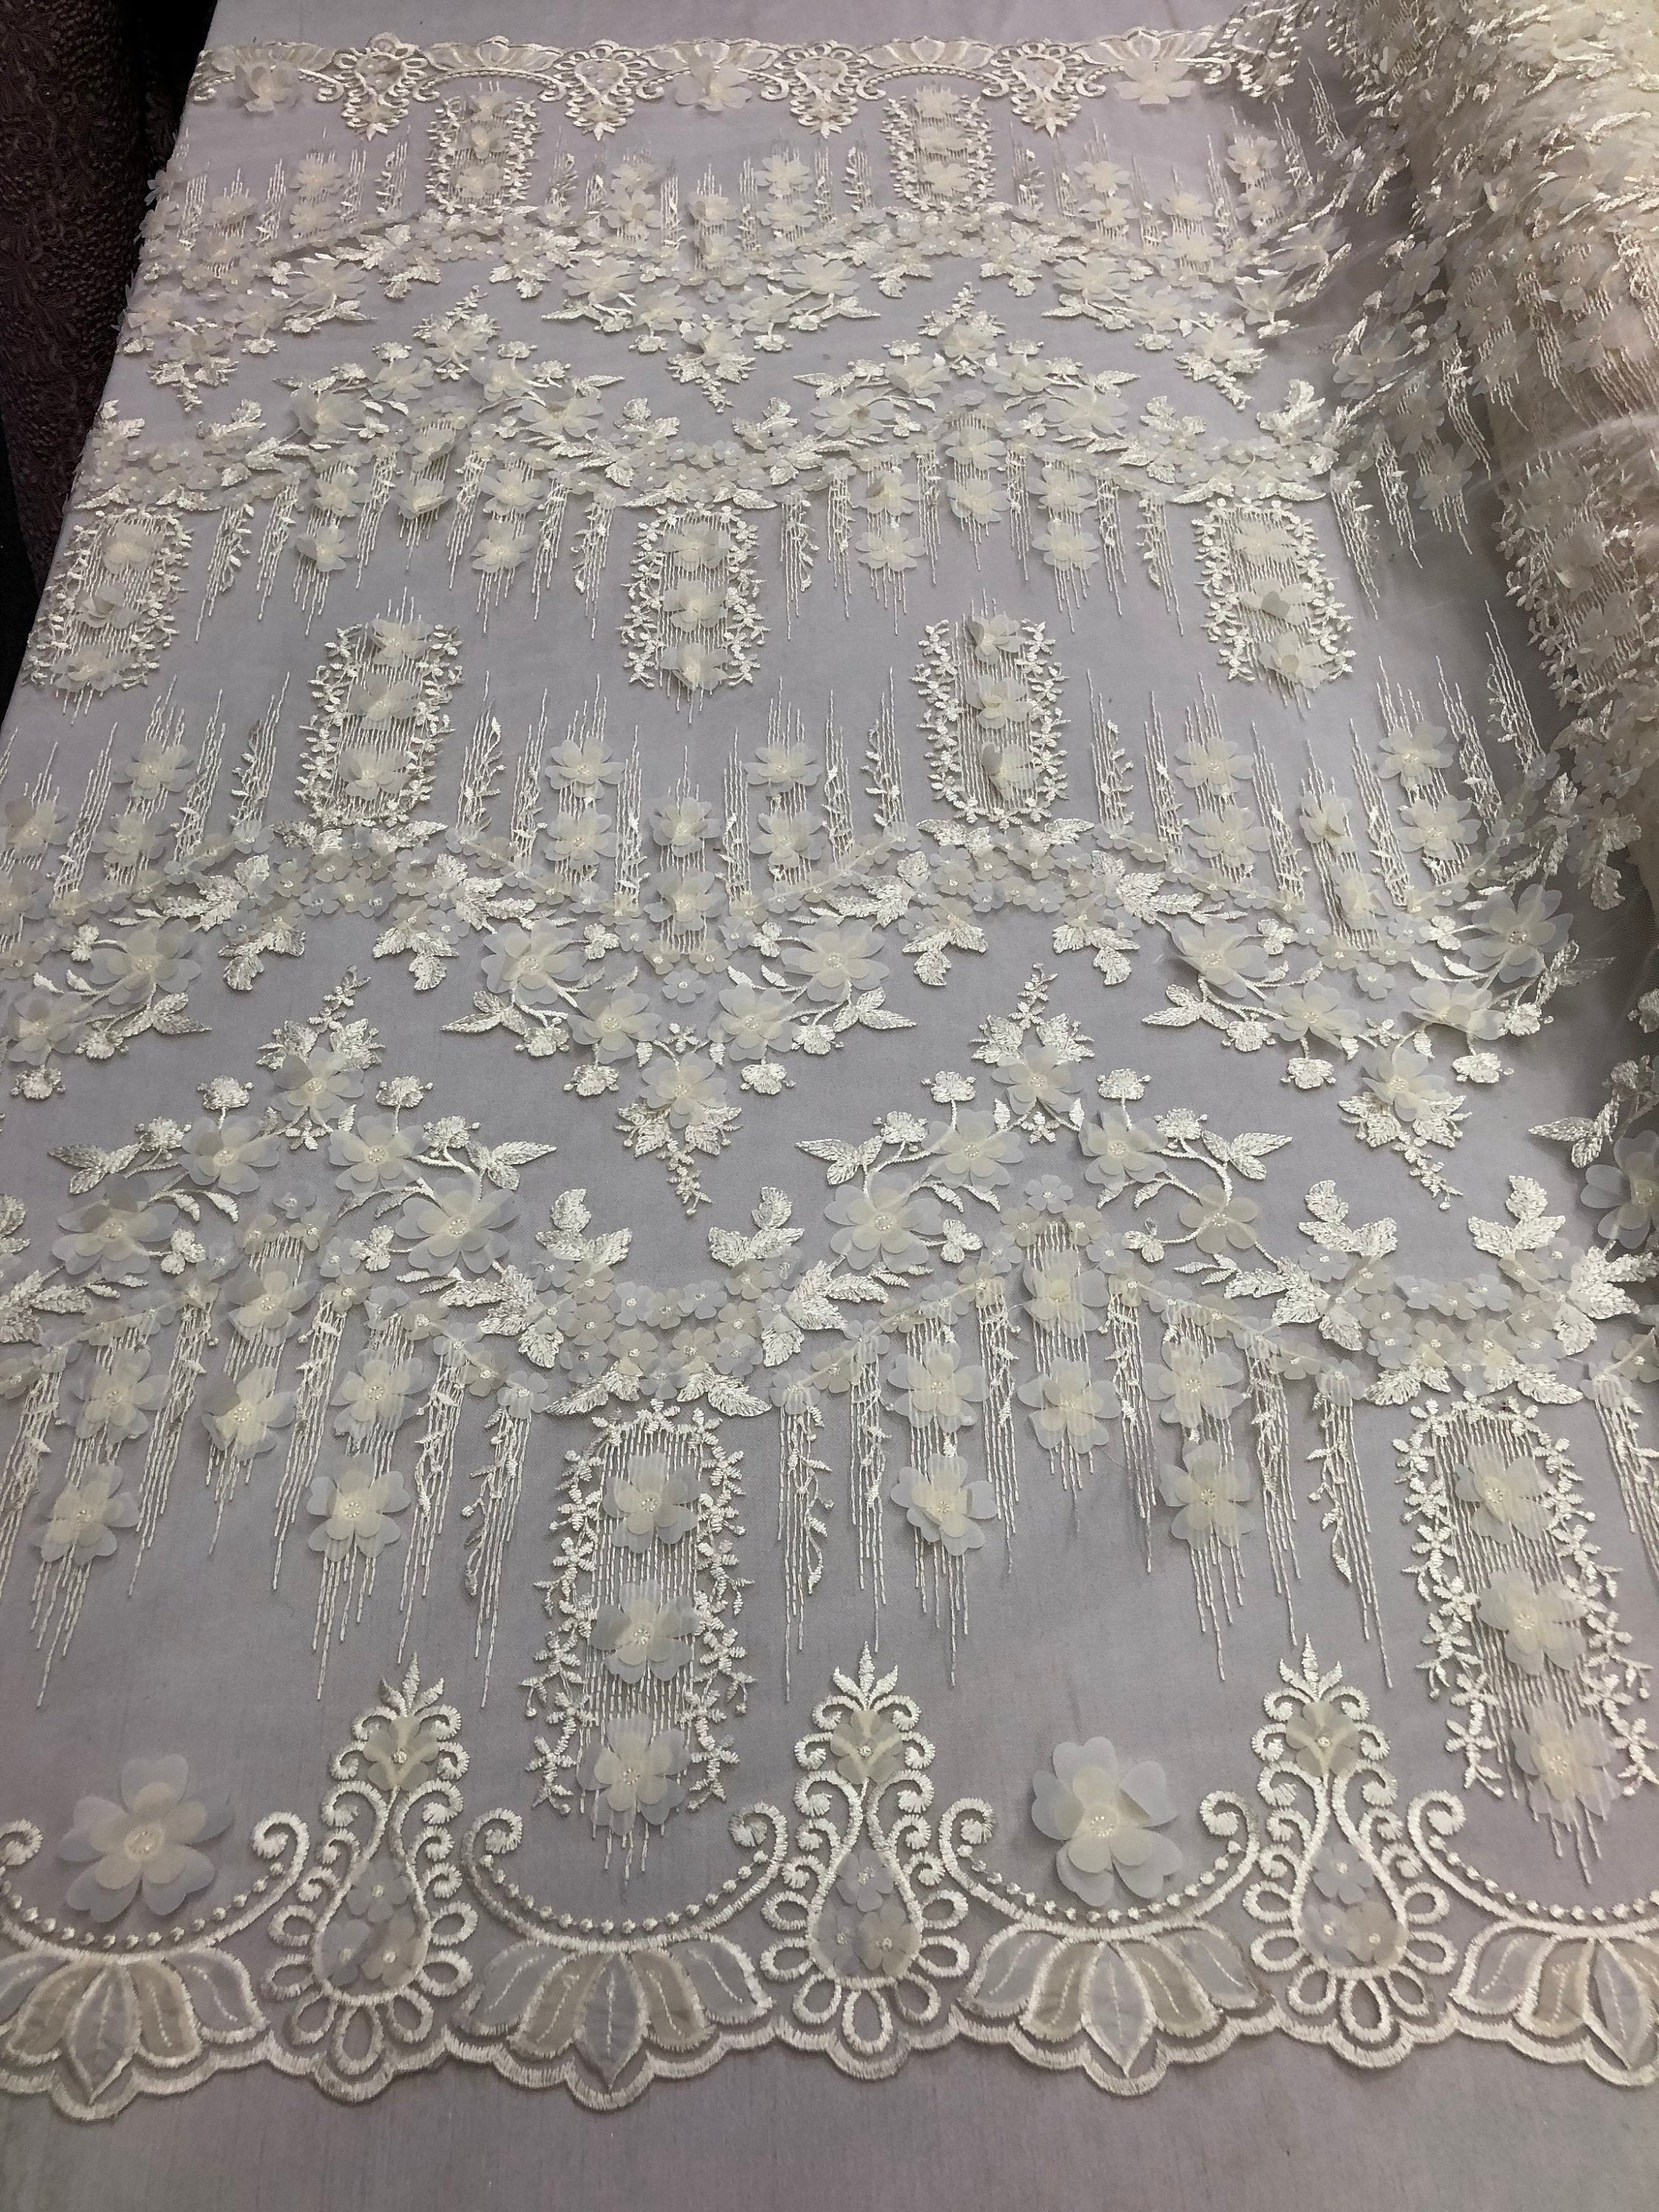 Bridal Wedding Lace Fabric By The Yard - Hand Embroidered Flower 3D IVORY For Veil Mesh Dress Top Wedding Decoration - KINGDOM OF FABRICS